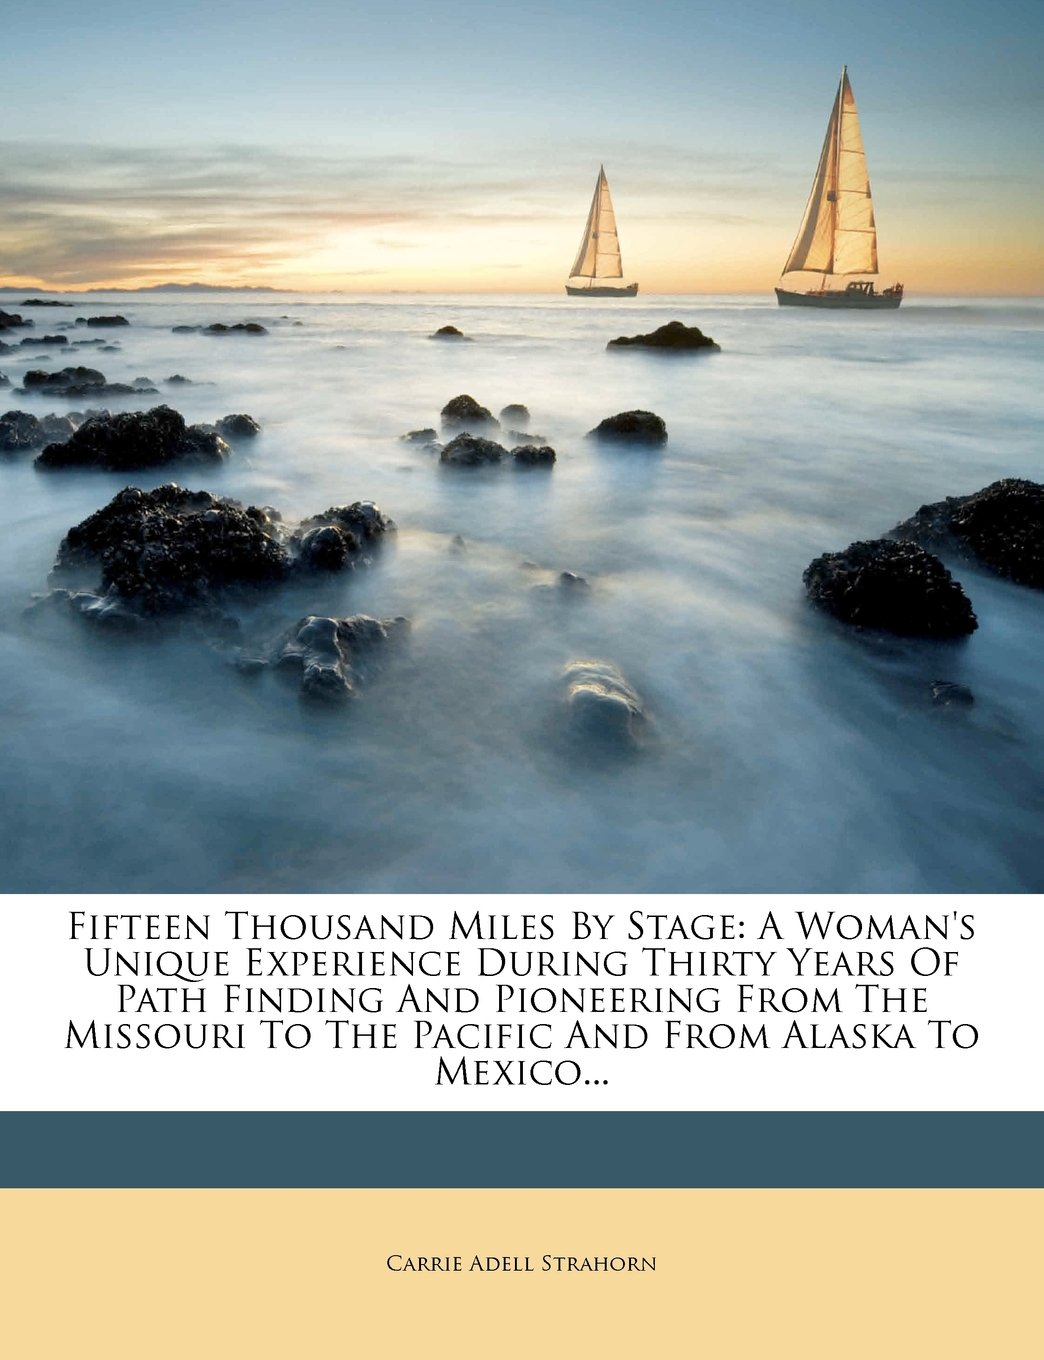 Download Fifteen Thousand Miles By Stage: A Woman's Unique Experience During Thirty Years Of Path Finding And Pioneering From The Missouri To The Pacific And From Alaska To Mexico... pdf epub